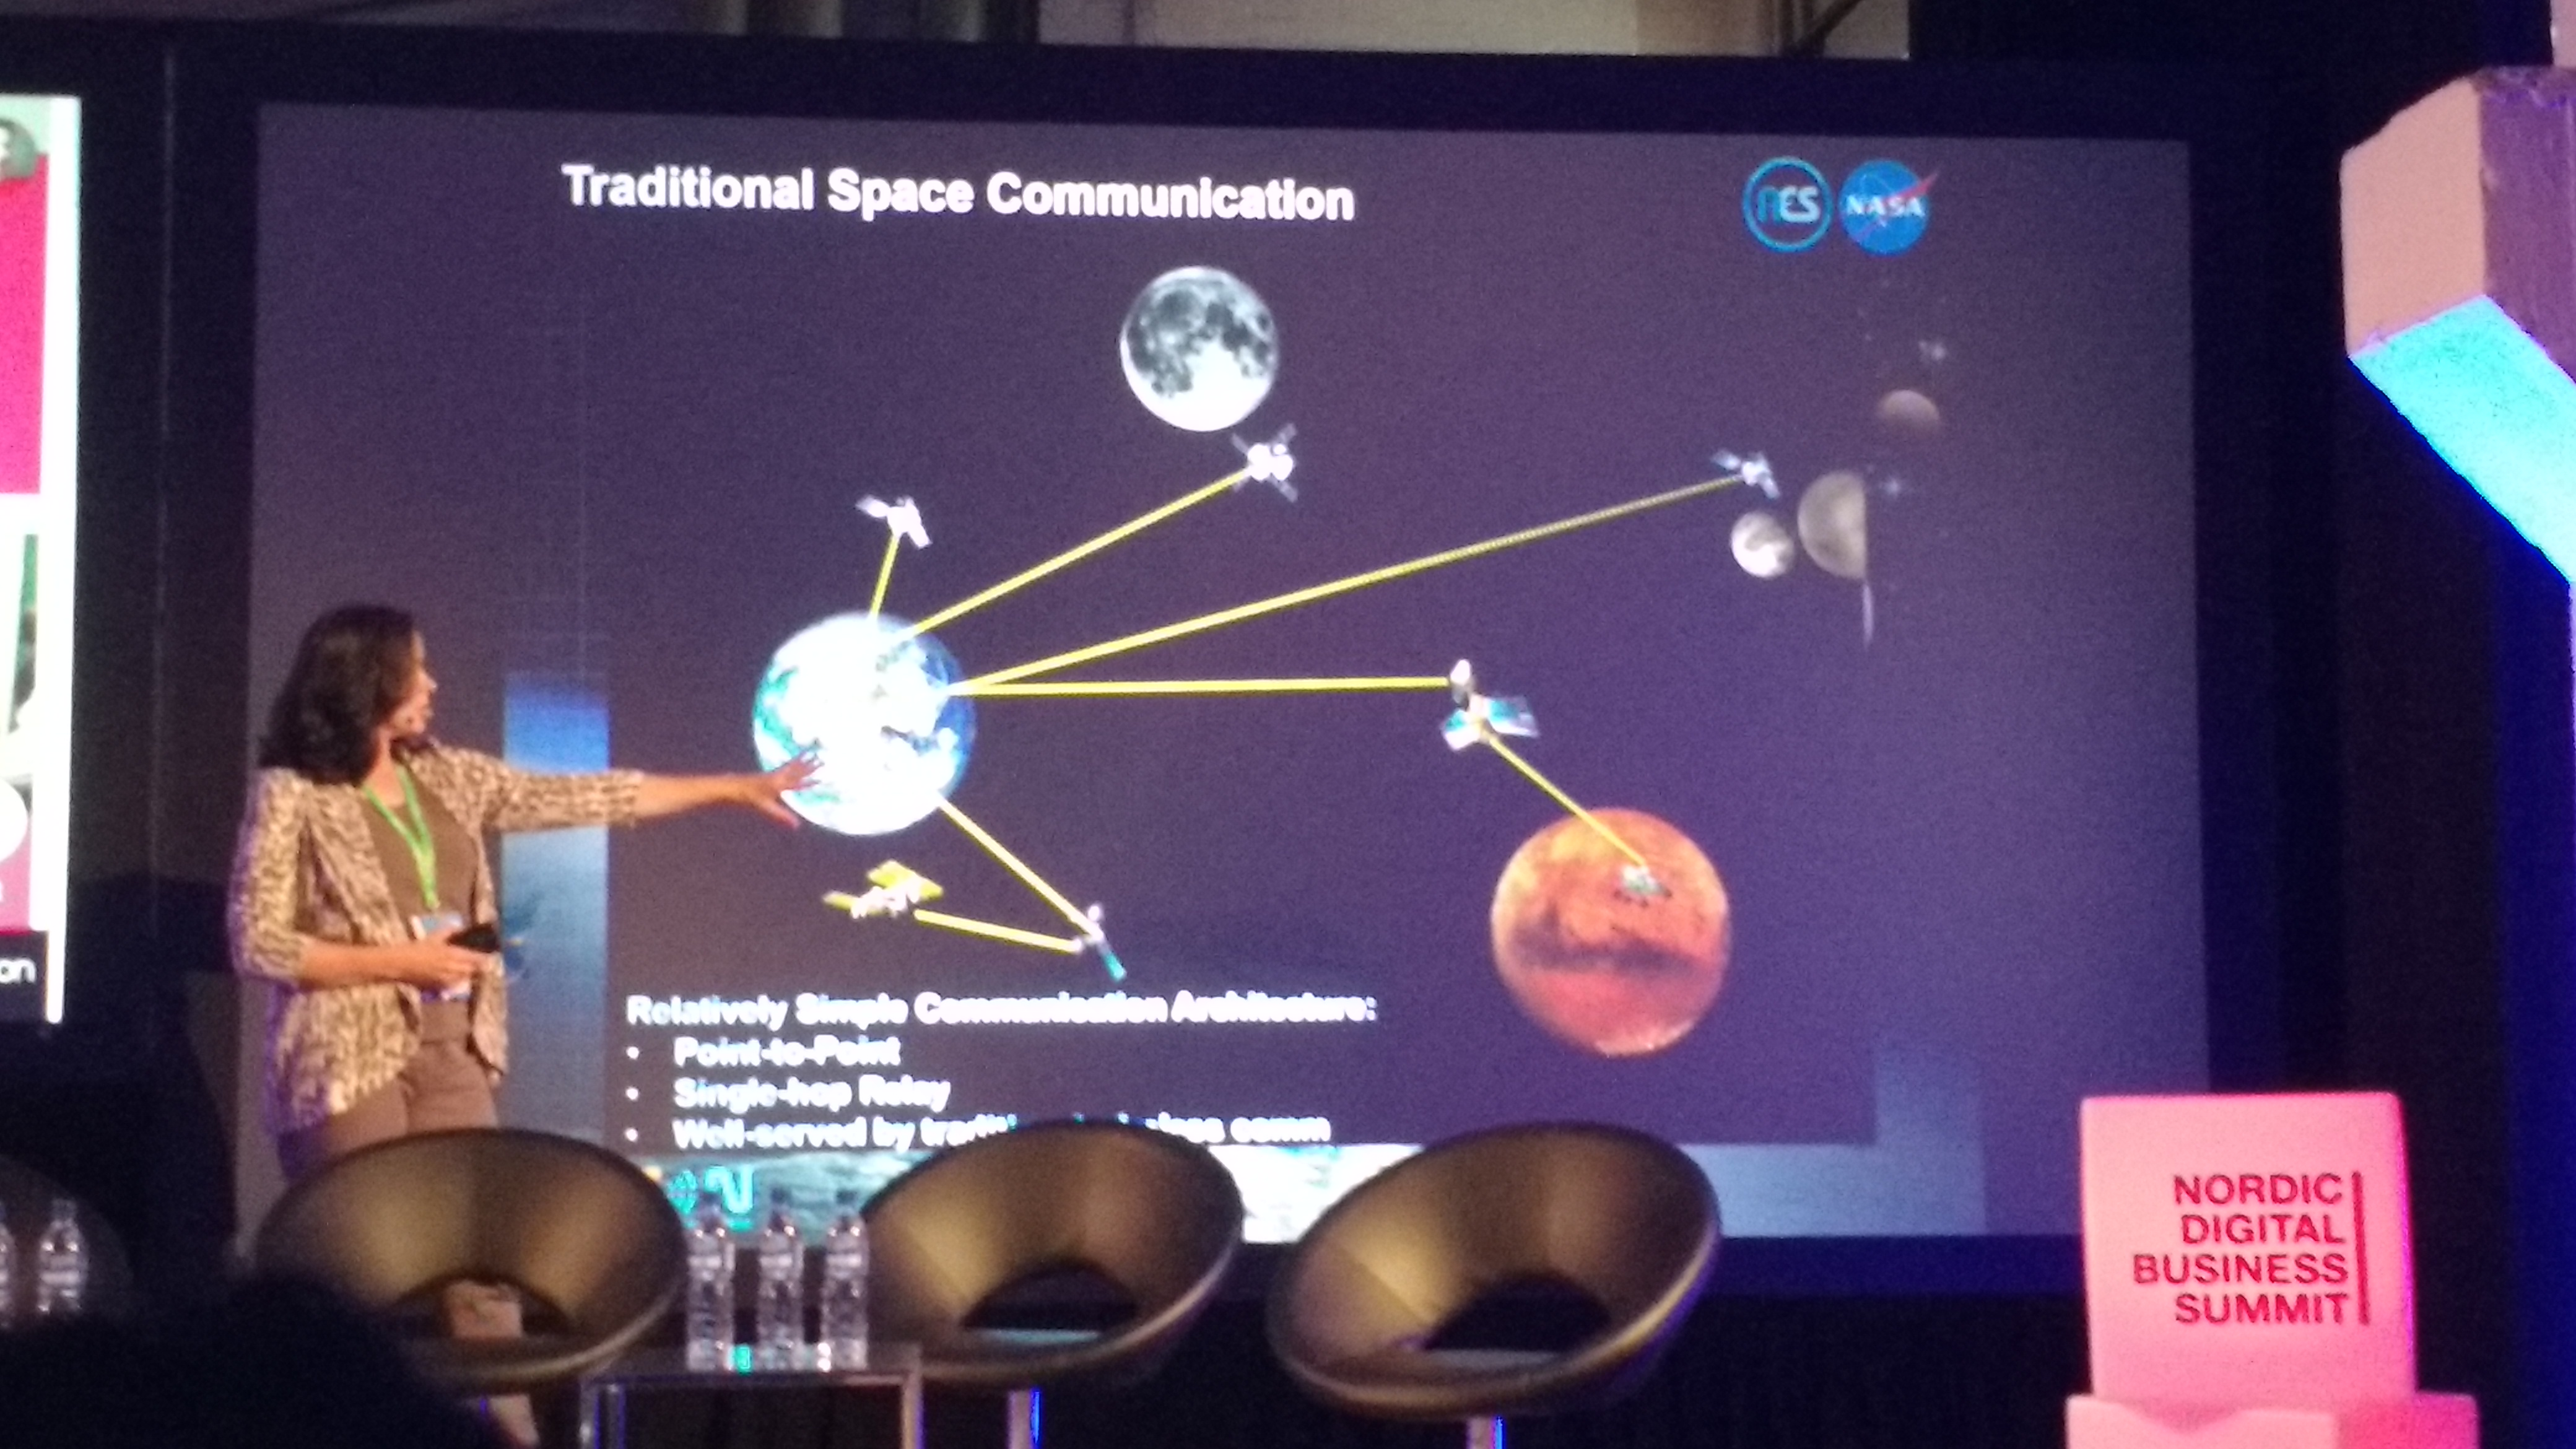 Traditional Space Communication